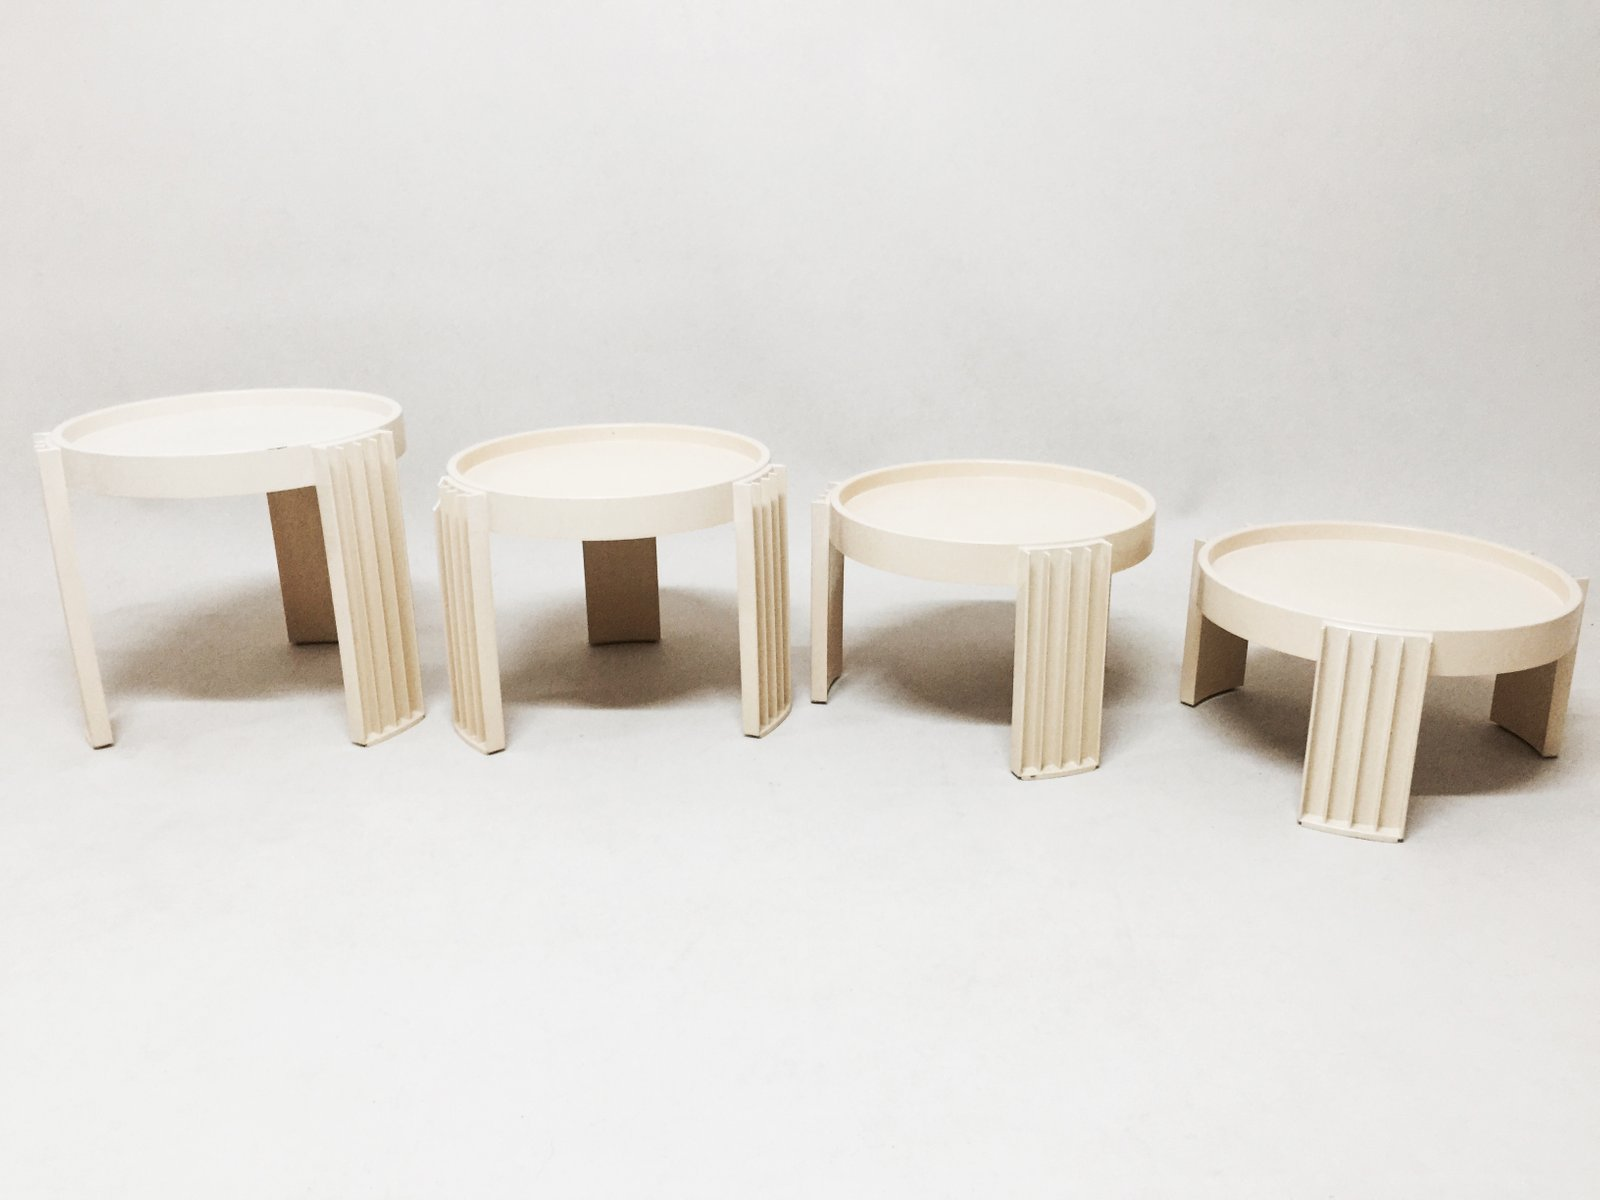 Amazing photo of Nesting Tables by Gianfranco Frattini for Cassina Set of 4 for sale  with #4A3725 color and 1600x1200 pixels